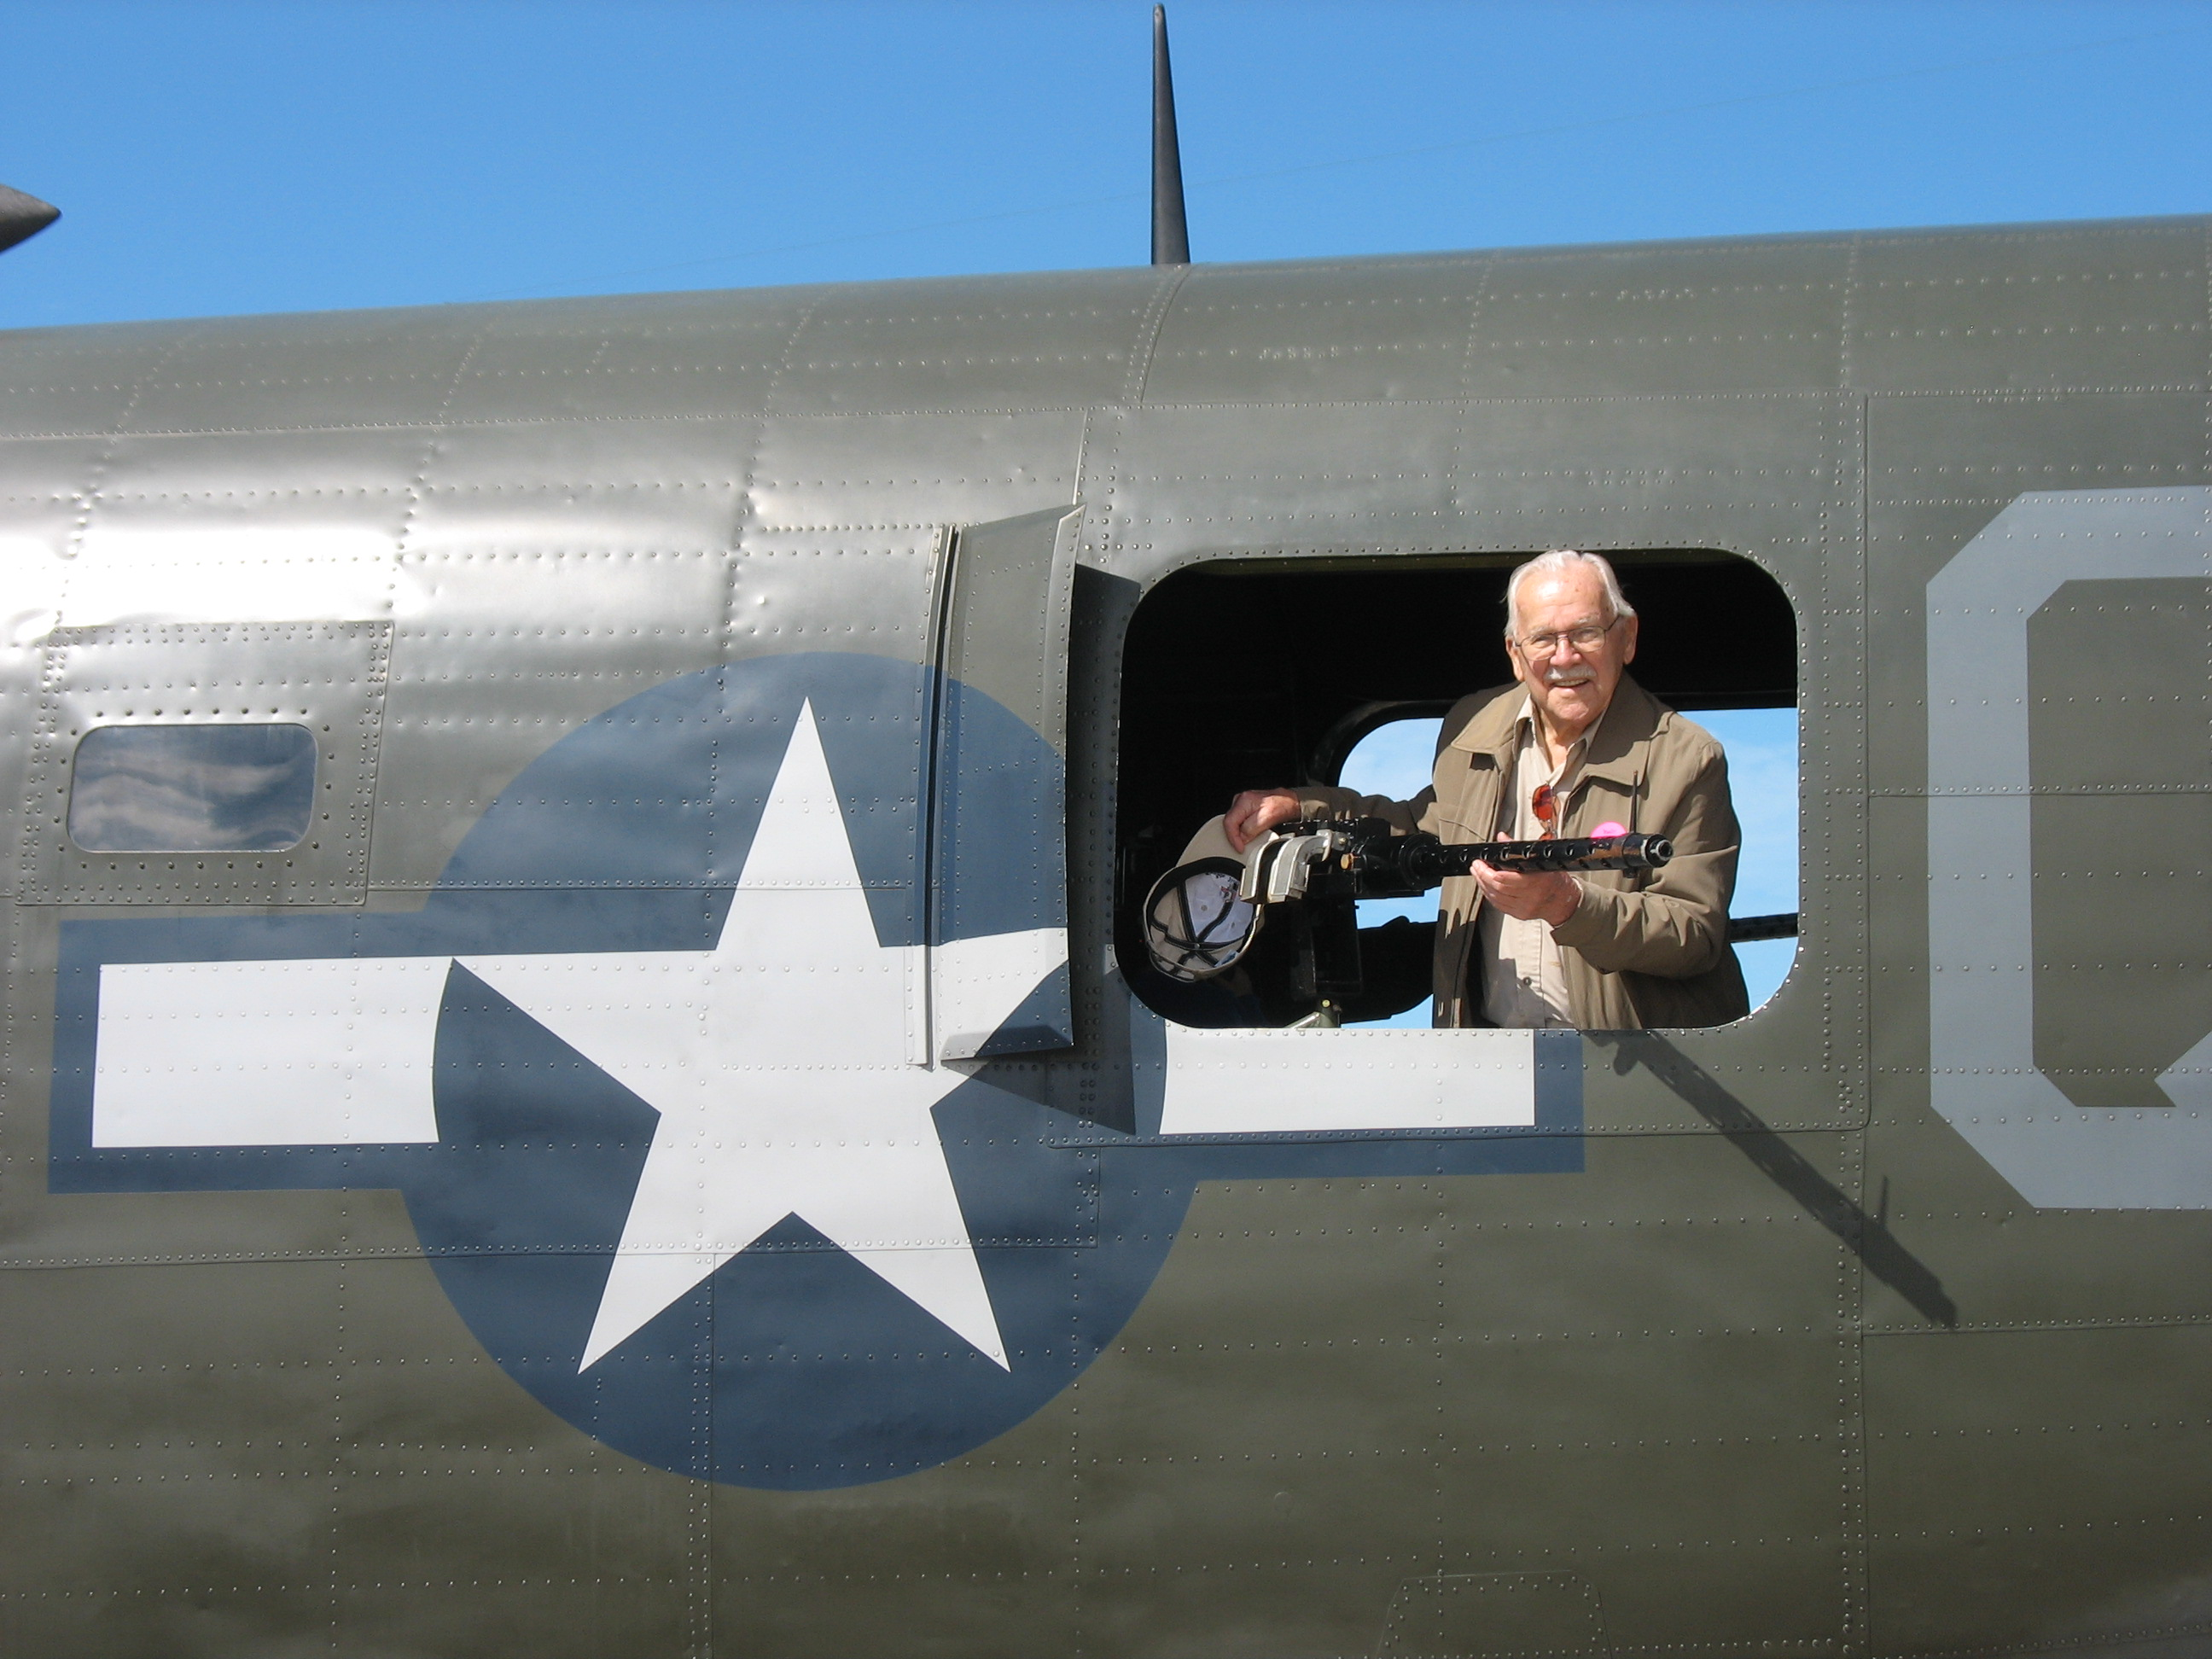 bomber pictures_027